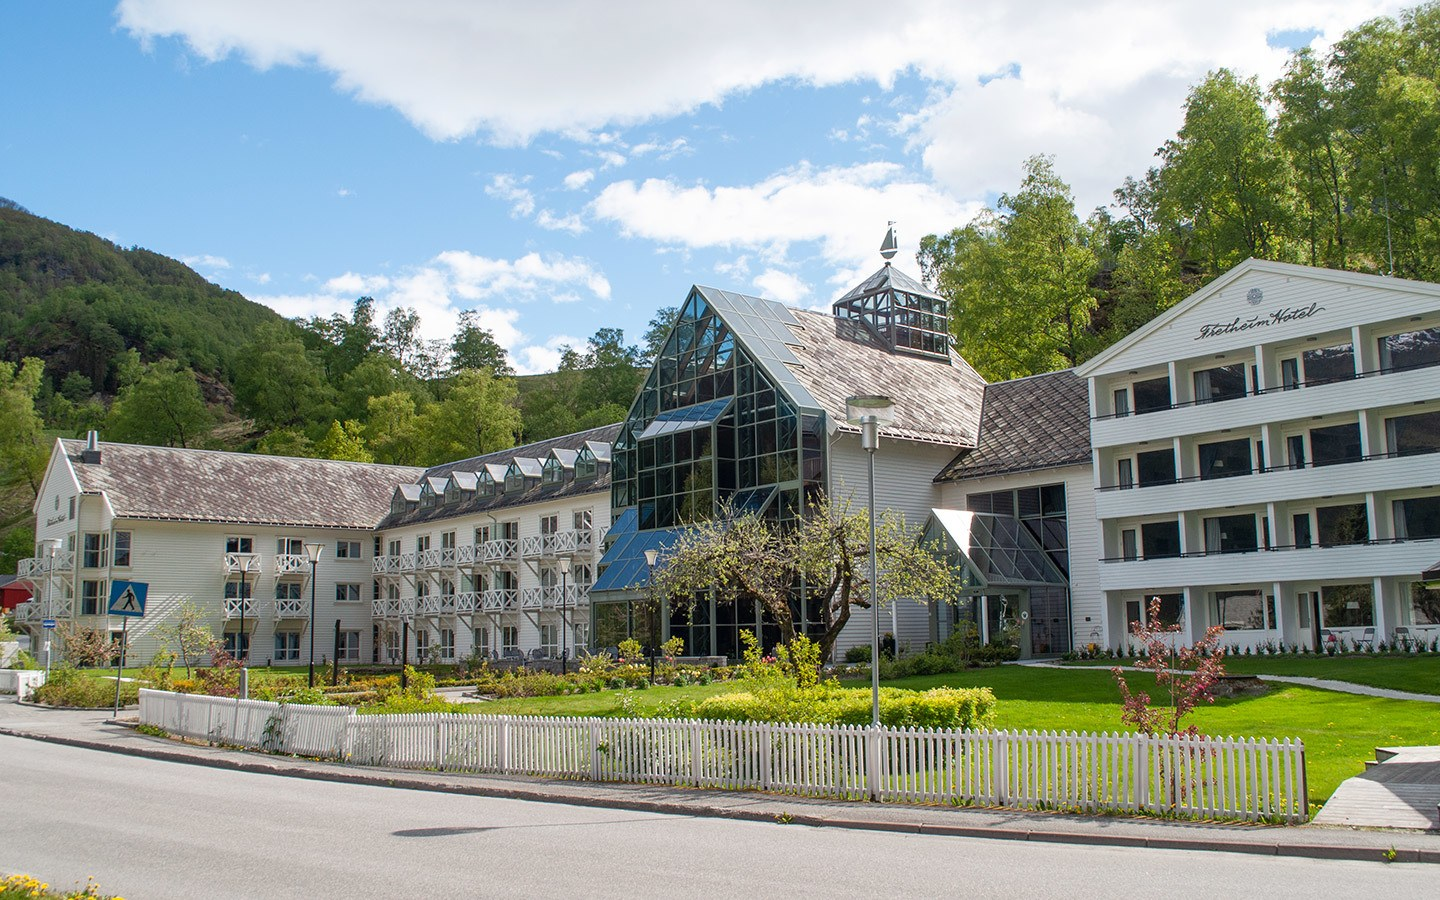 The Fretheim Hotel in Flam